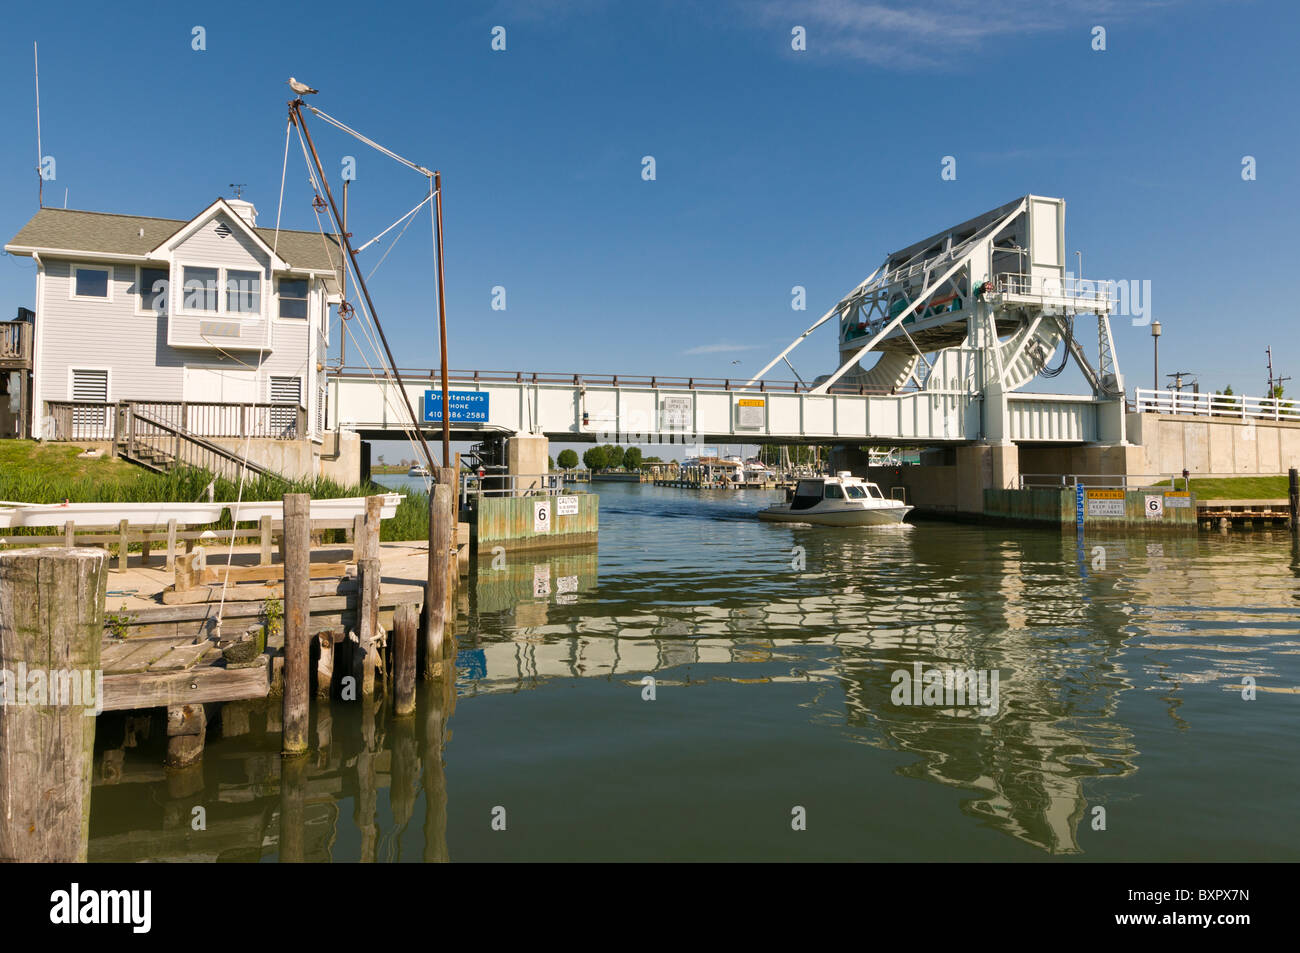 Knapps Narrows Drawbridge, the busiest drawbridge in the United States,Tilghman Island, Talbot County, Maryland - Stock Image